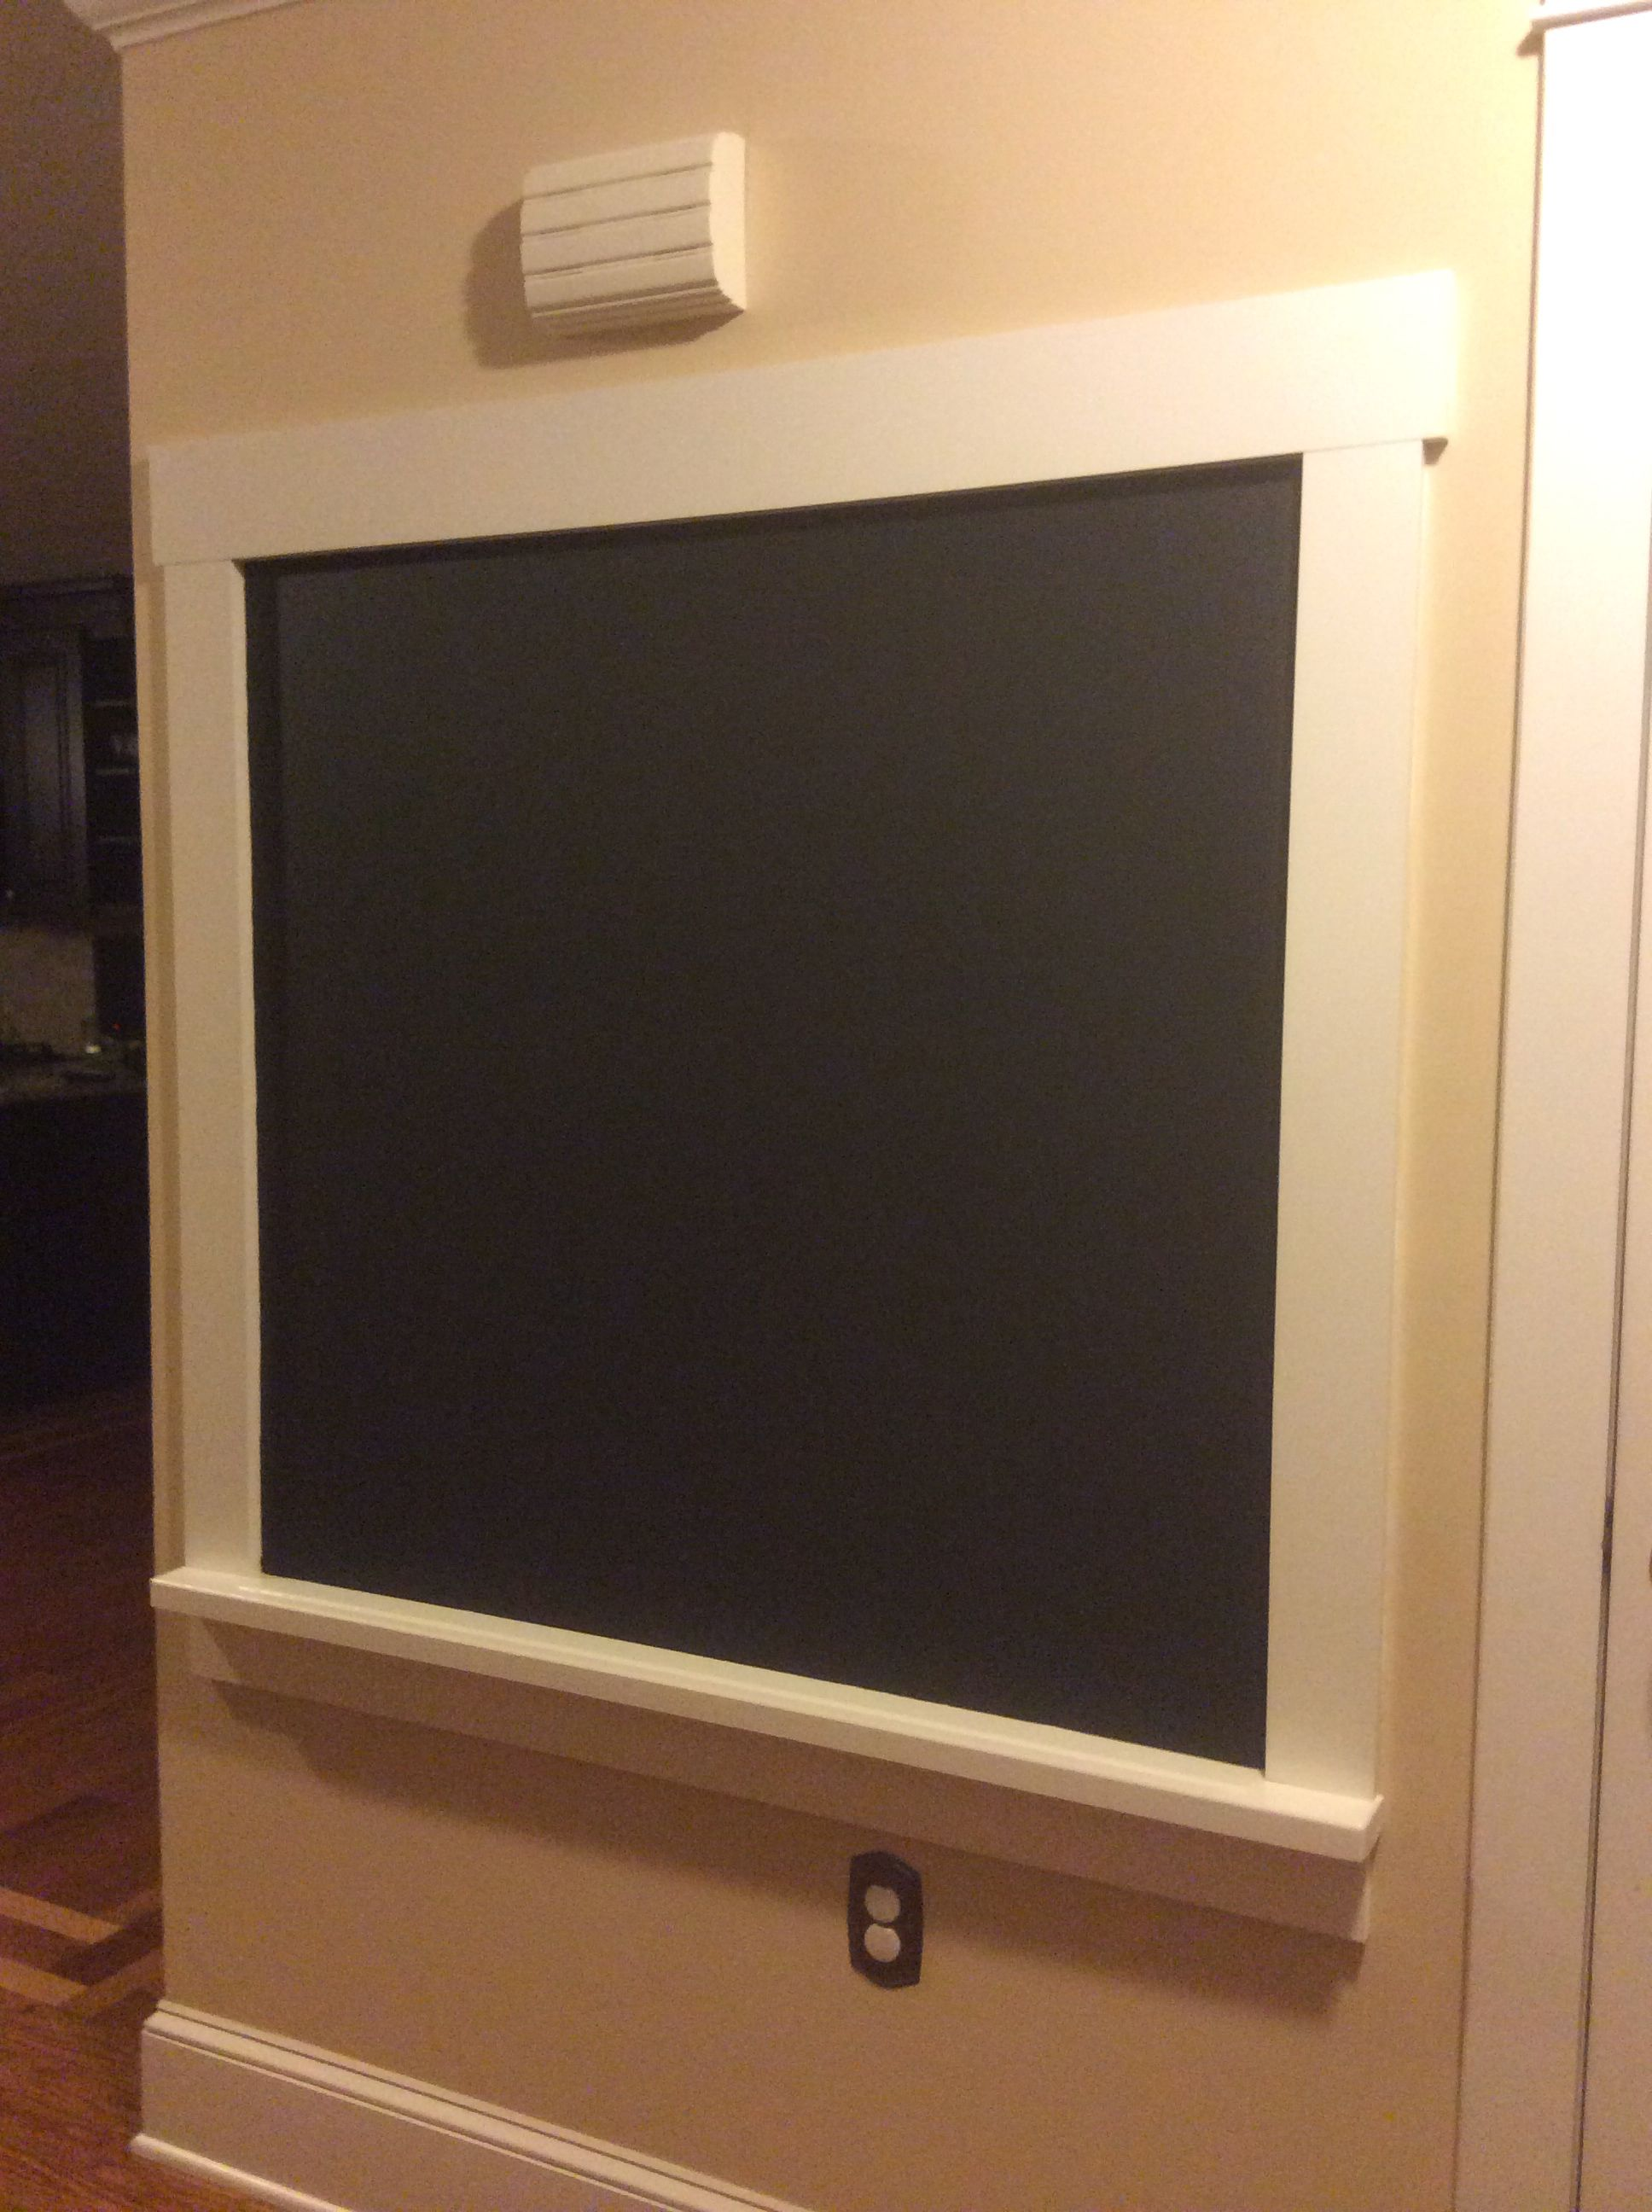 Diy Framed Chalkboard With A Ledge Magnetic Chalkboard Wall